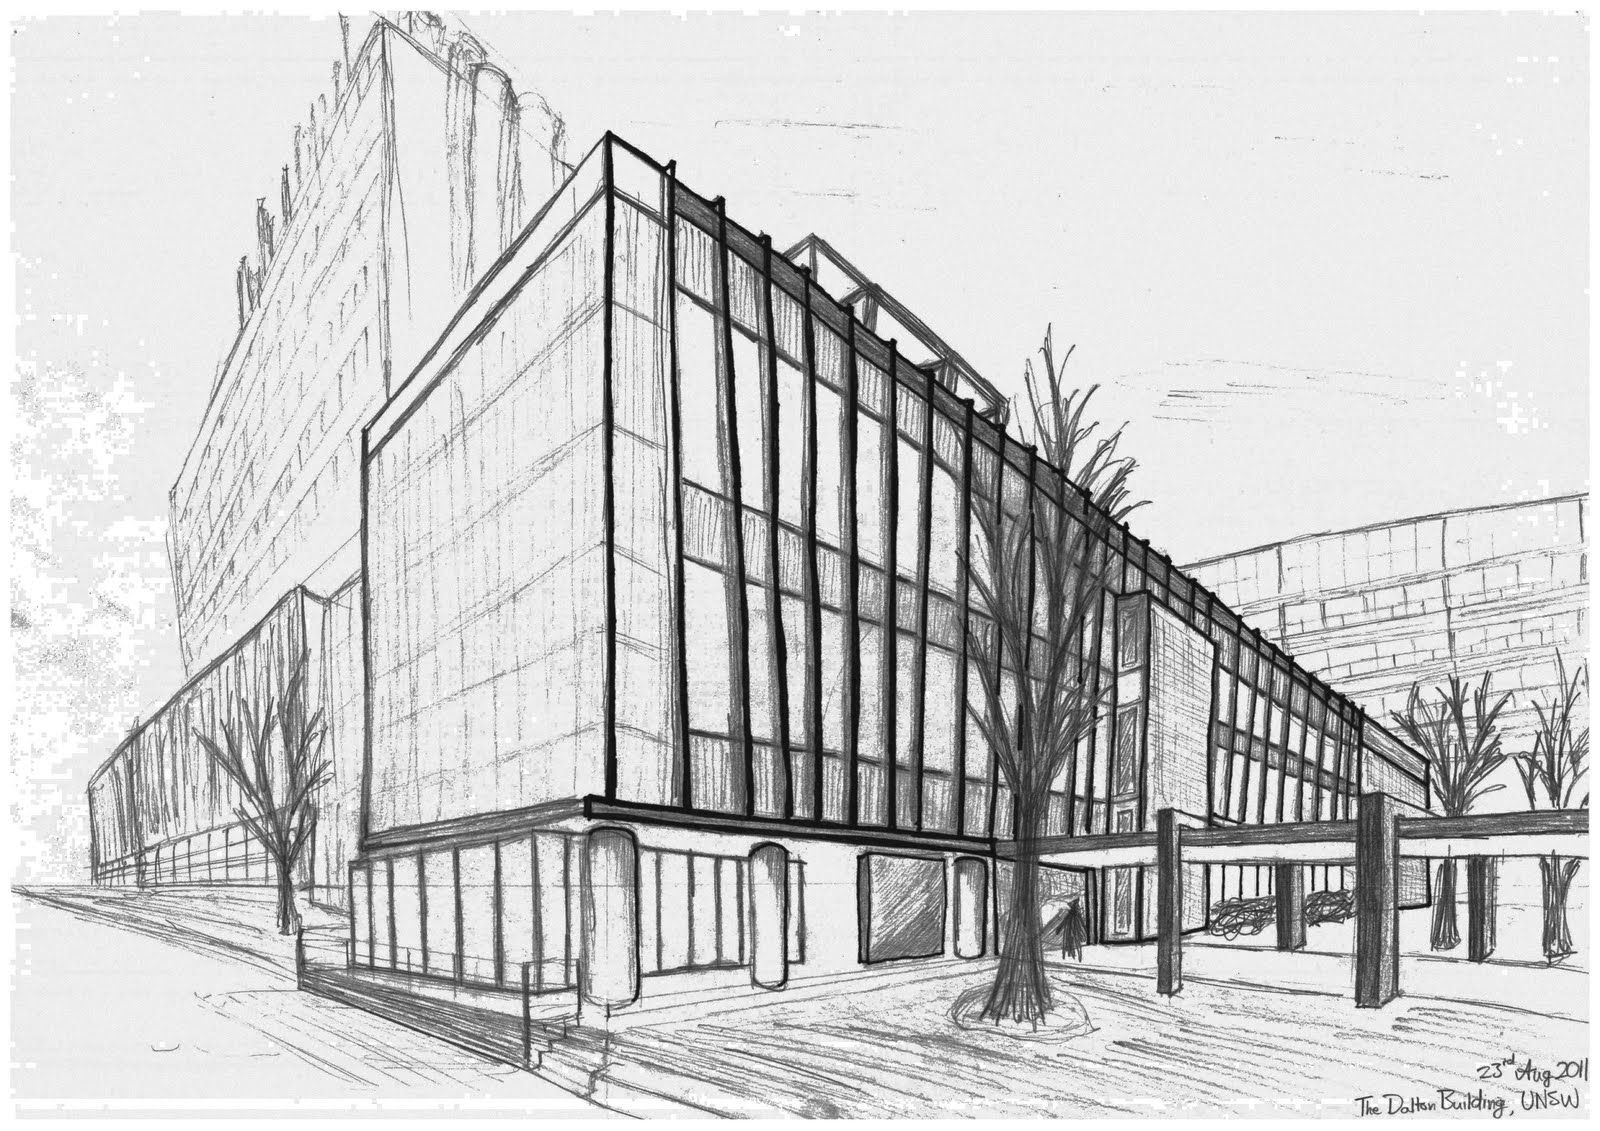 Perspective Drawings Of Buildings perspective drawing of buildings - google search | perspective